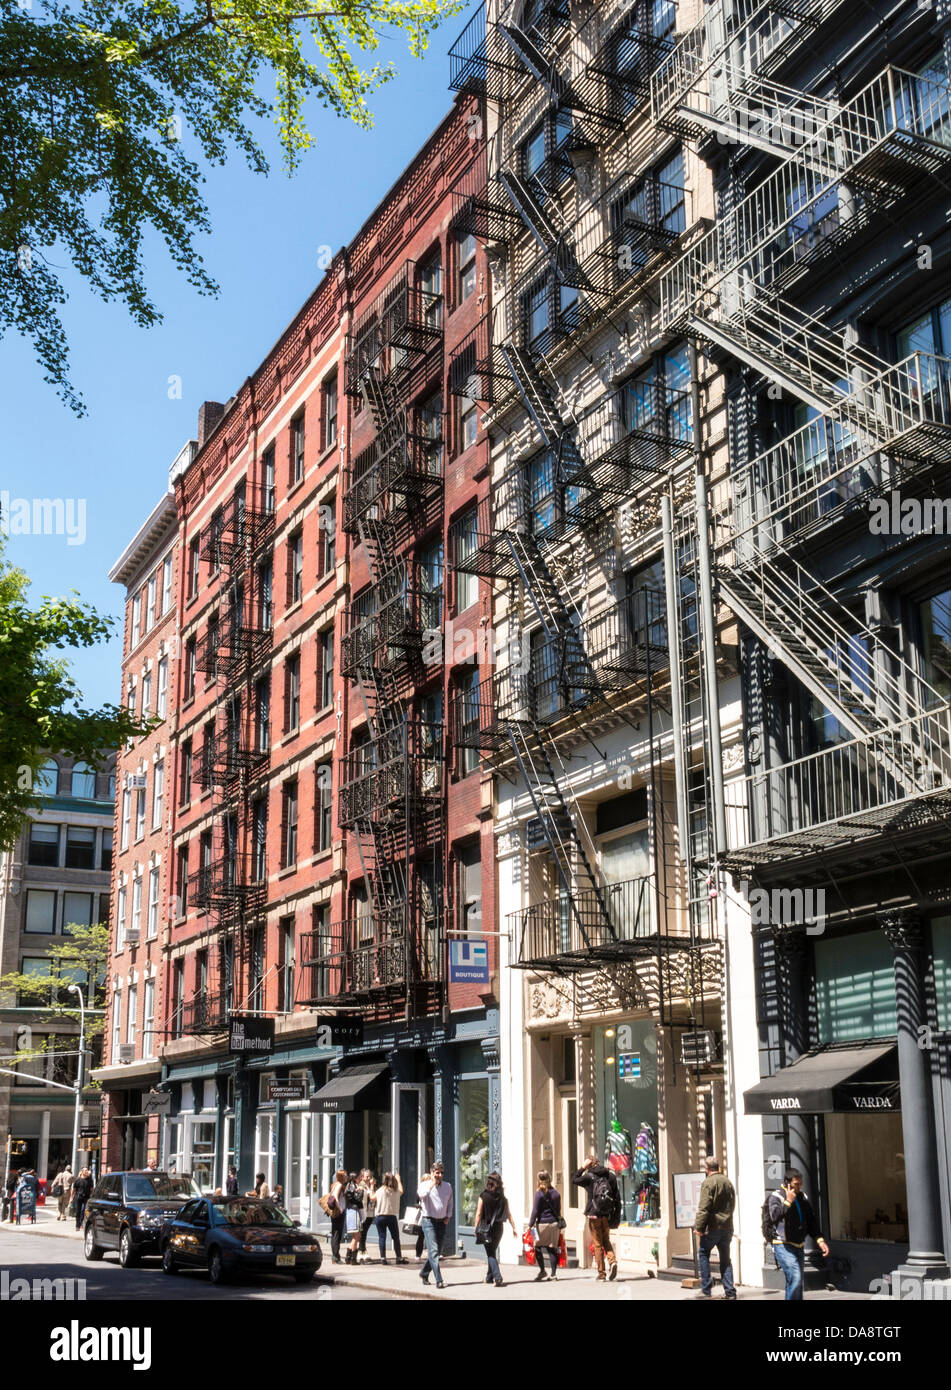 Building Facades, SoHo, Cast Iron Historic District, NYC Stock Photo